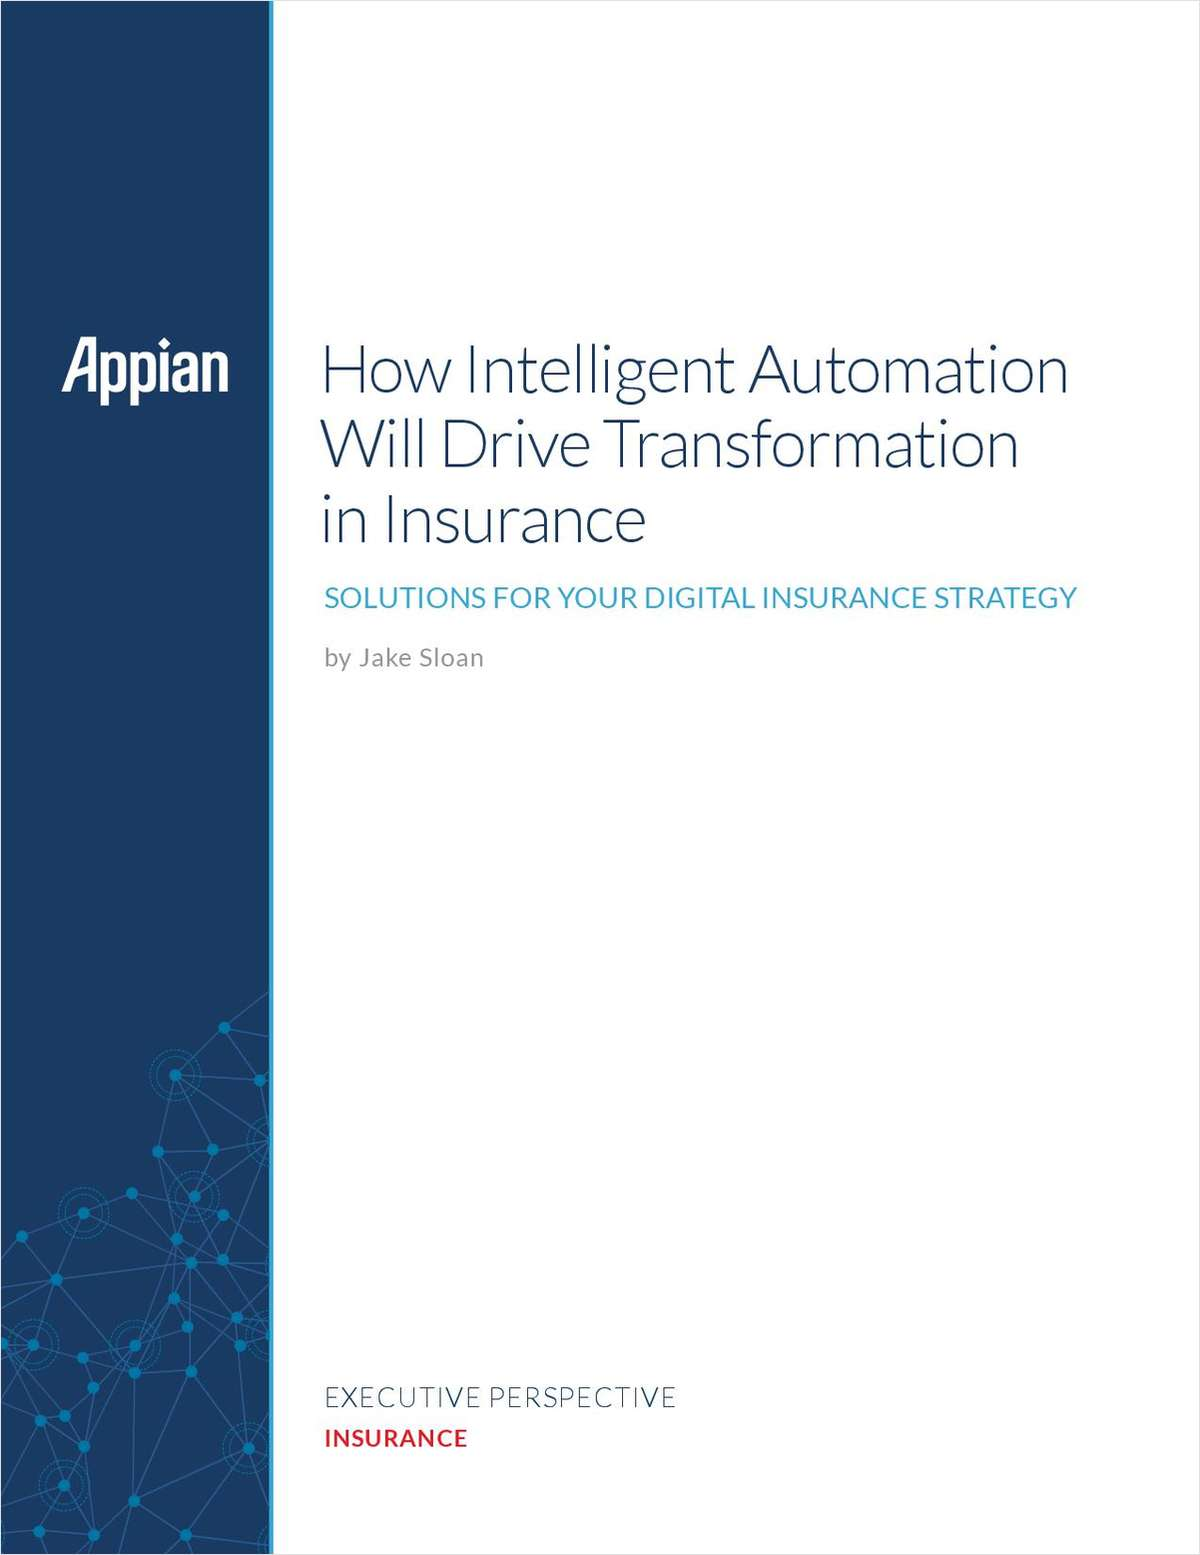 How Intelligent Automation Will Drive Transformation in Insurance